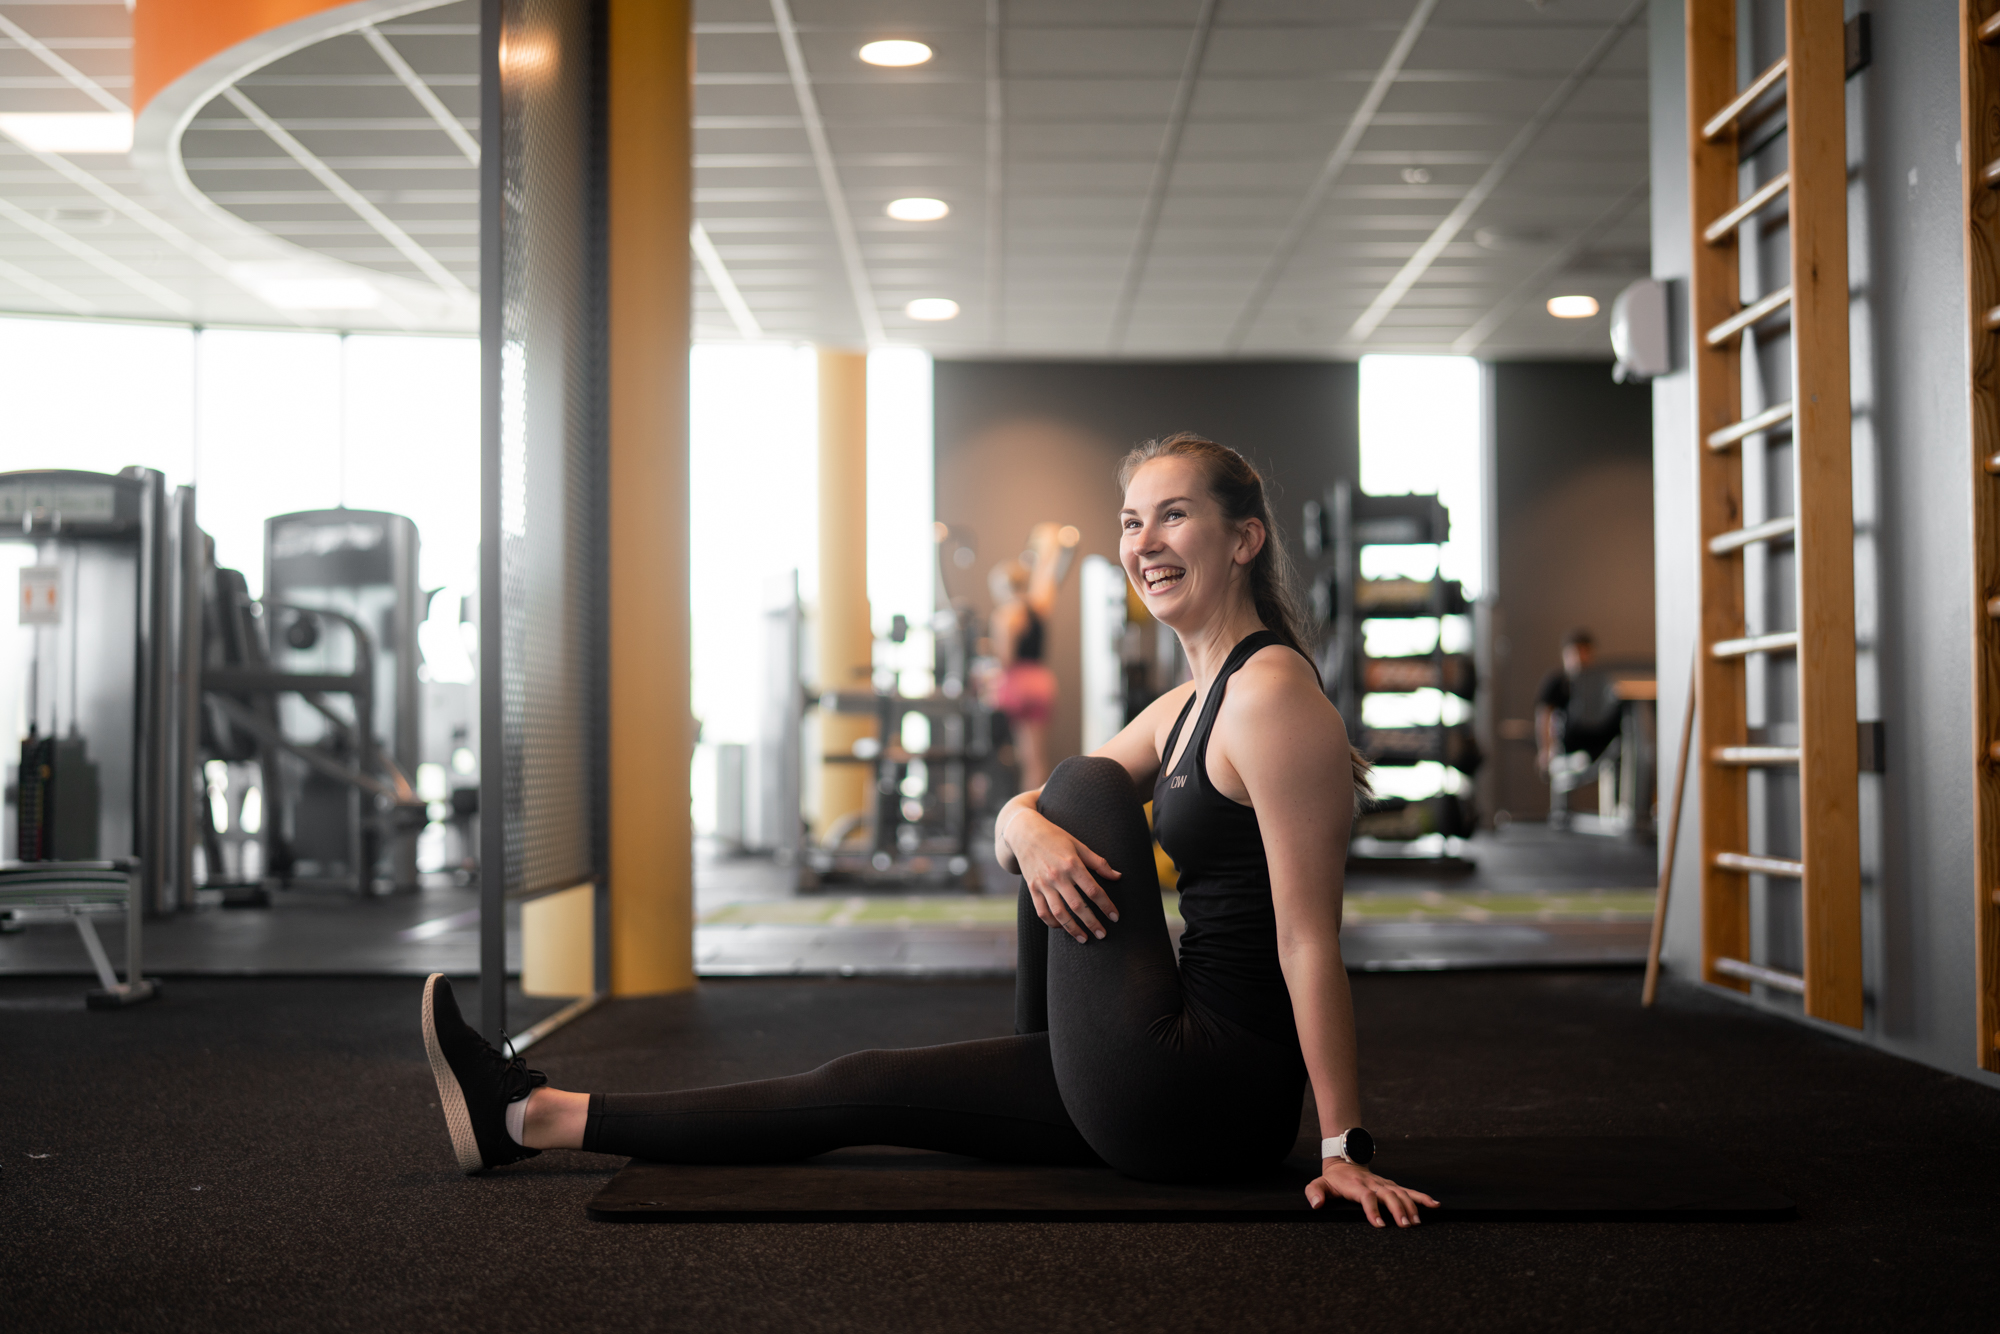 Girl stretching and smiling on the ground at Impulse fitness centre